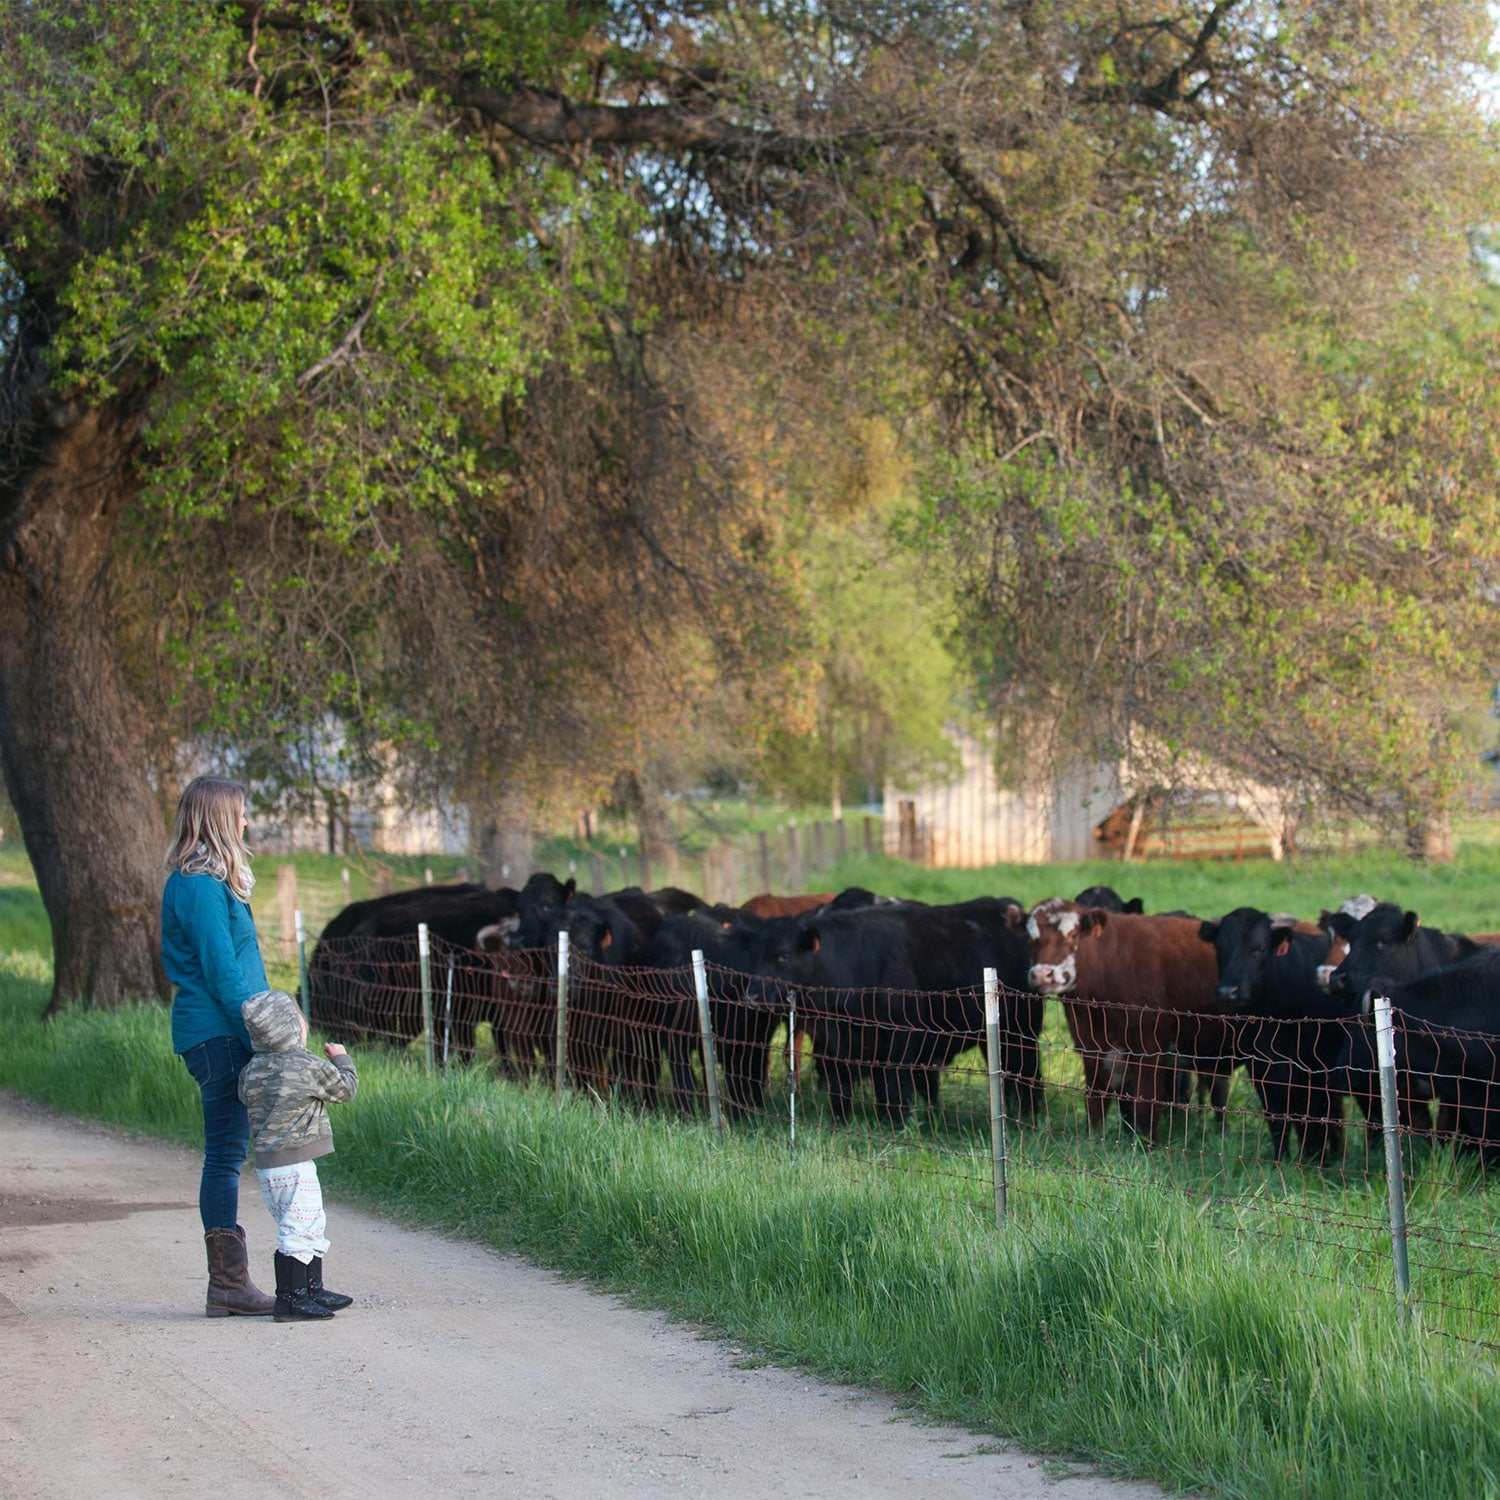 grassfed cattle on Richards Farm, a provider for Country Archer Provisions